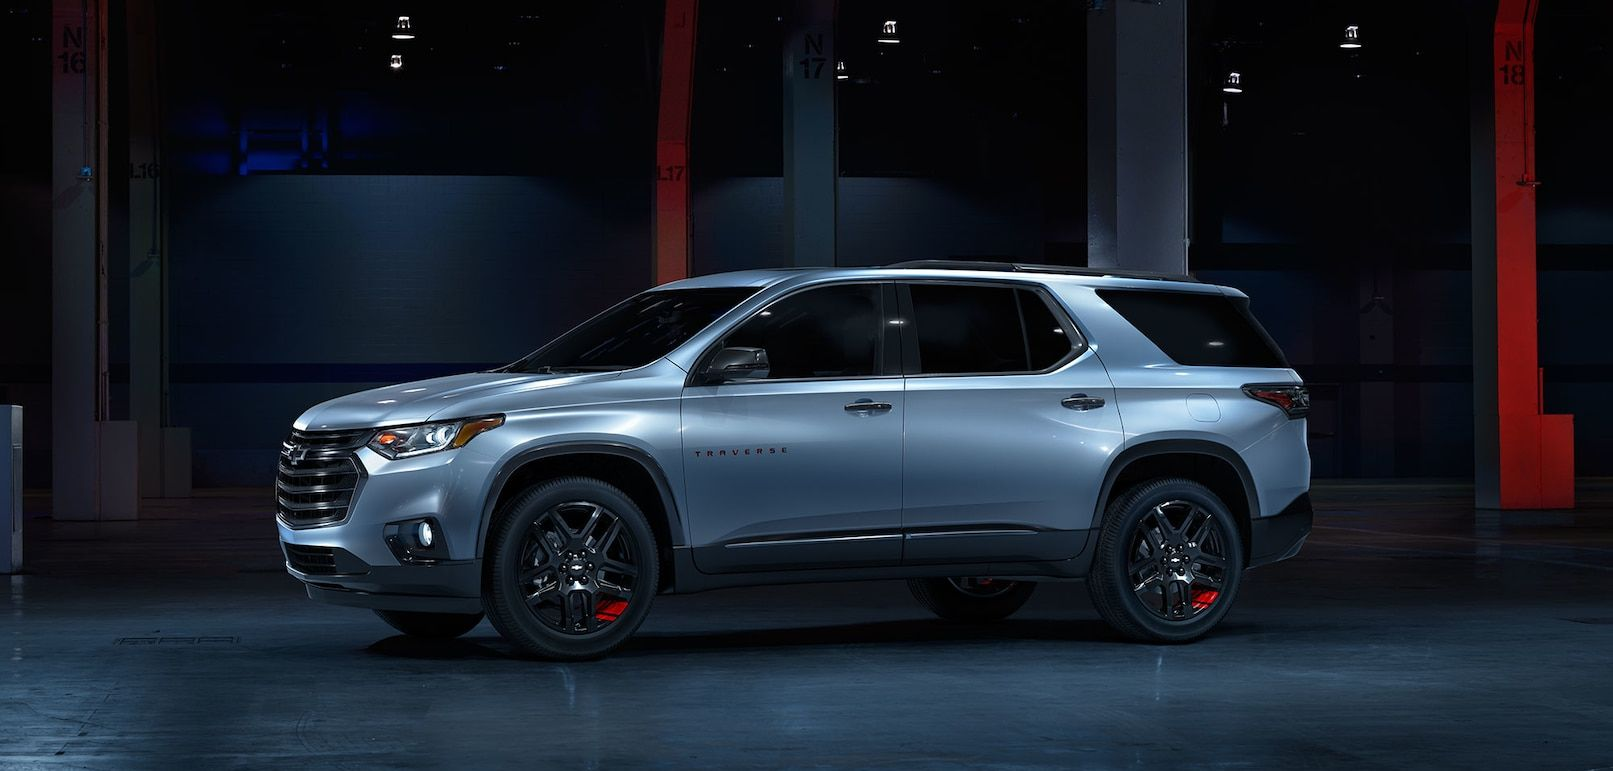 2018 Chevrolet Traverse Redline for Sale in Youngstown, OH ...